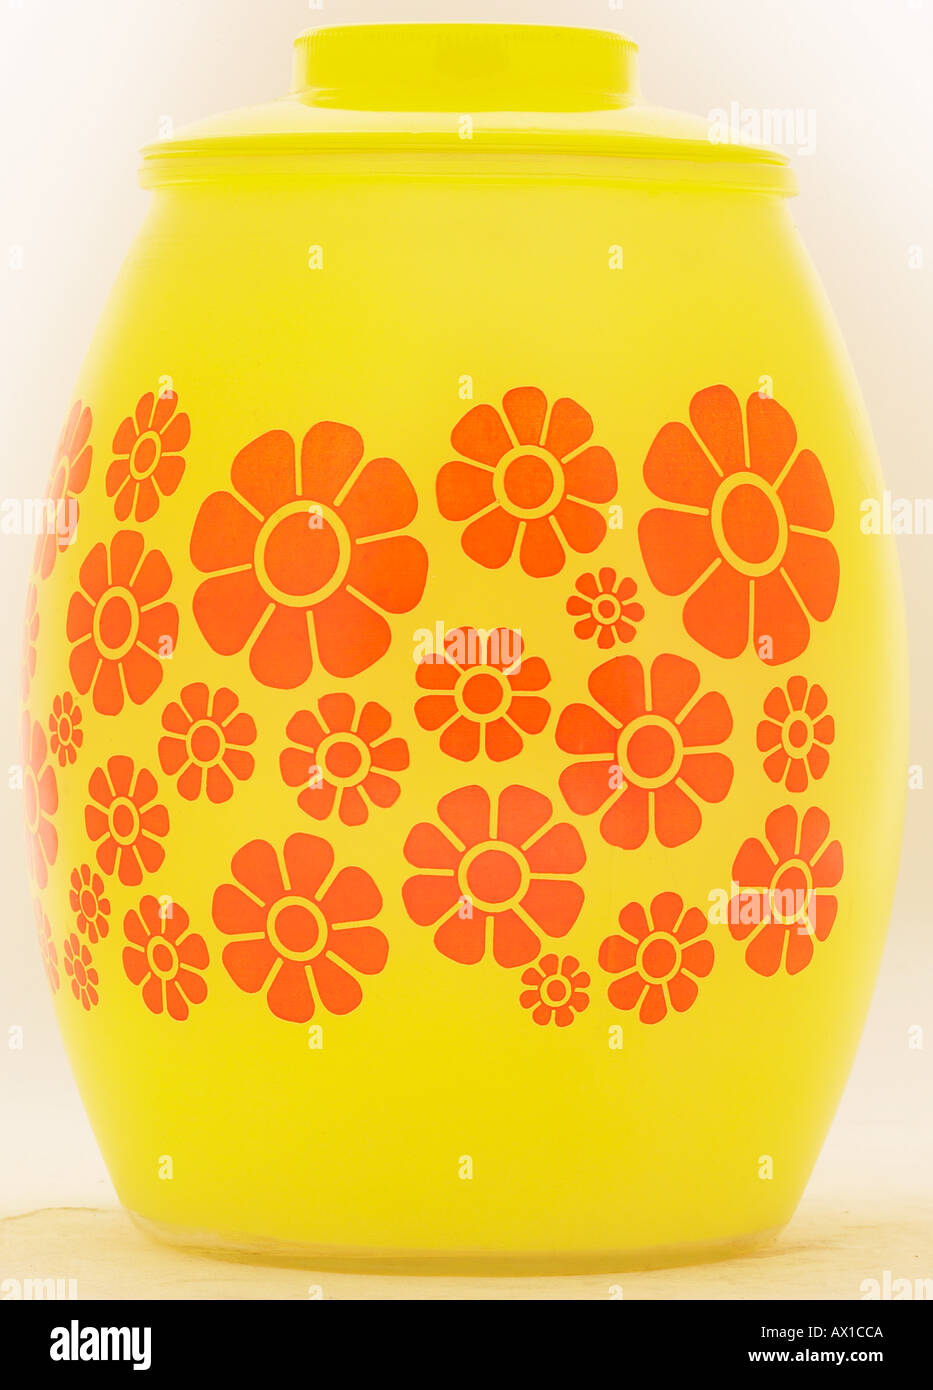 Yellow glass jar with painted orange flowers L3 - Stock Image